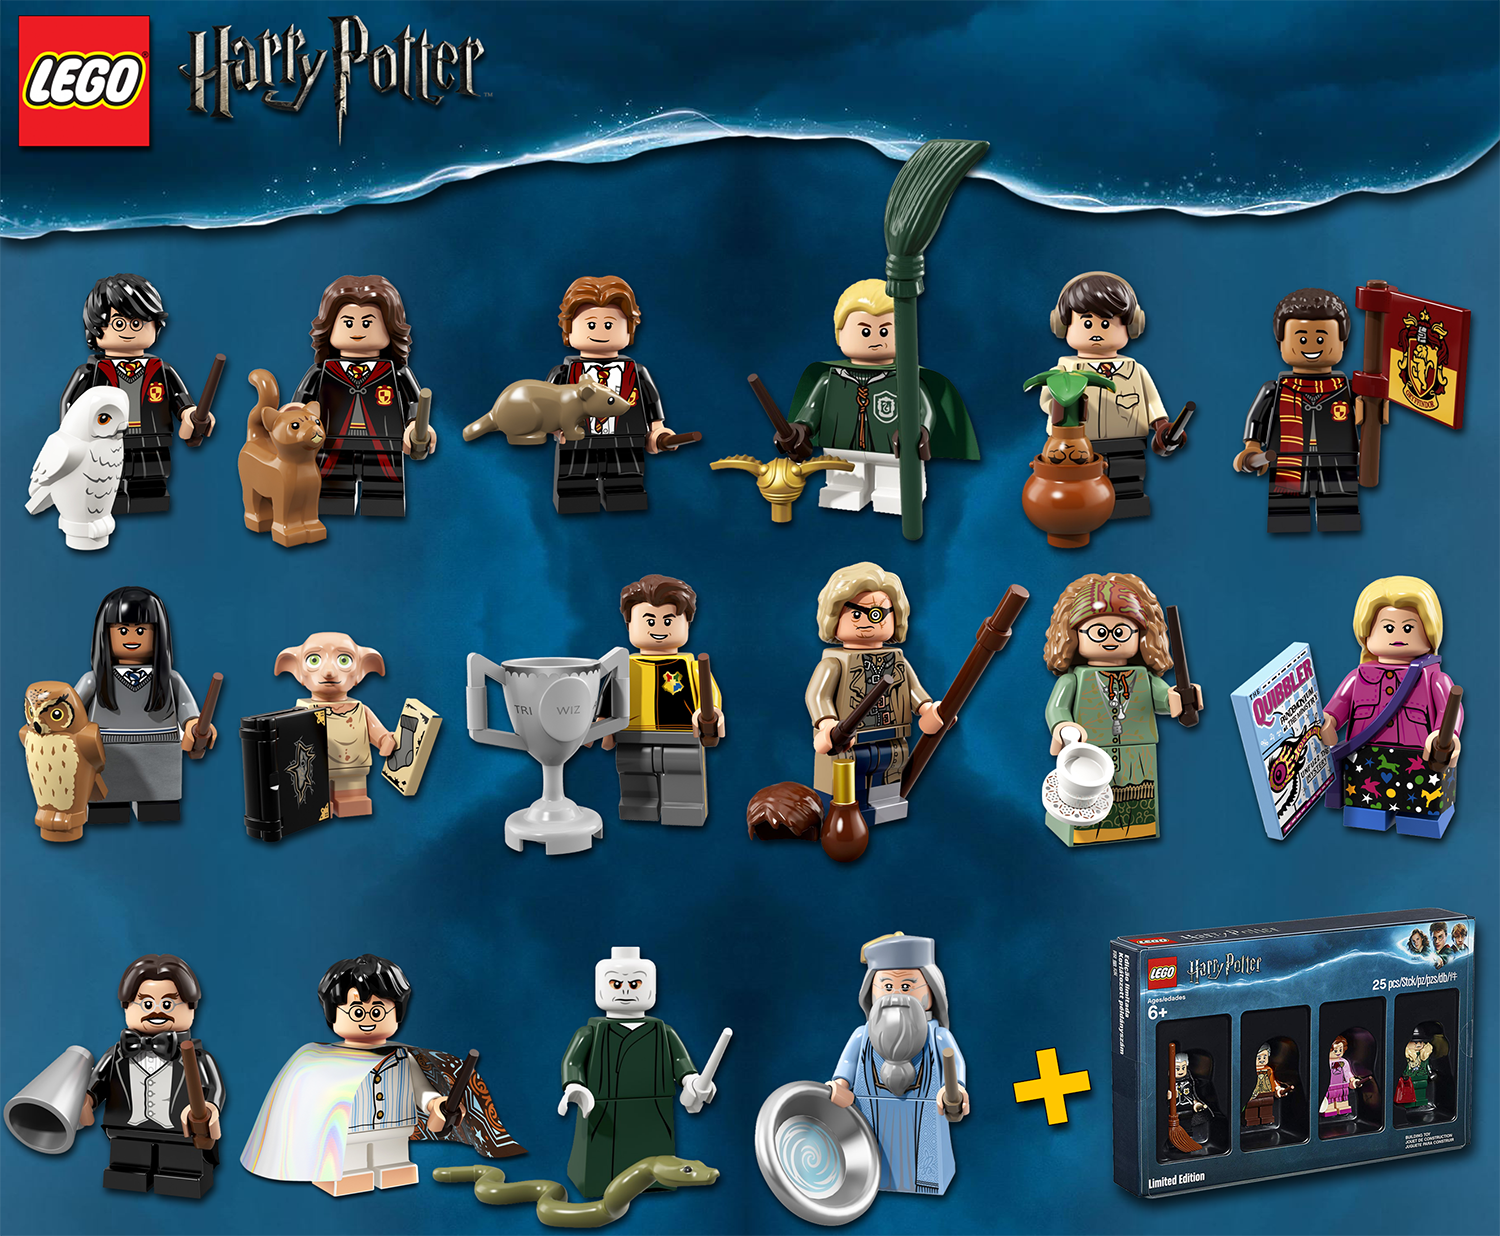 LEGO Minifigures  71022 Harry Potter Series + Boxset  5005254 - 100% NEW